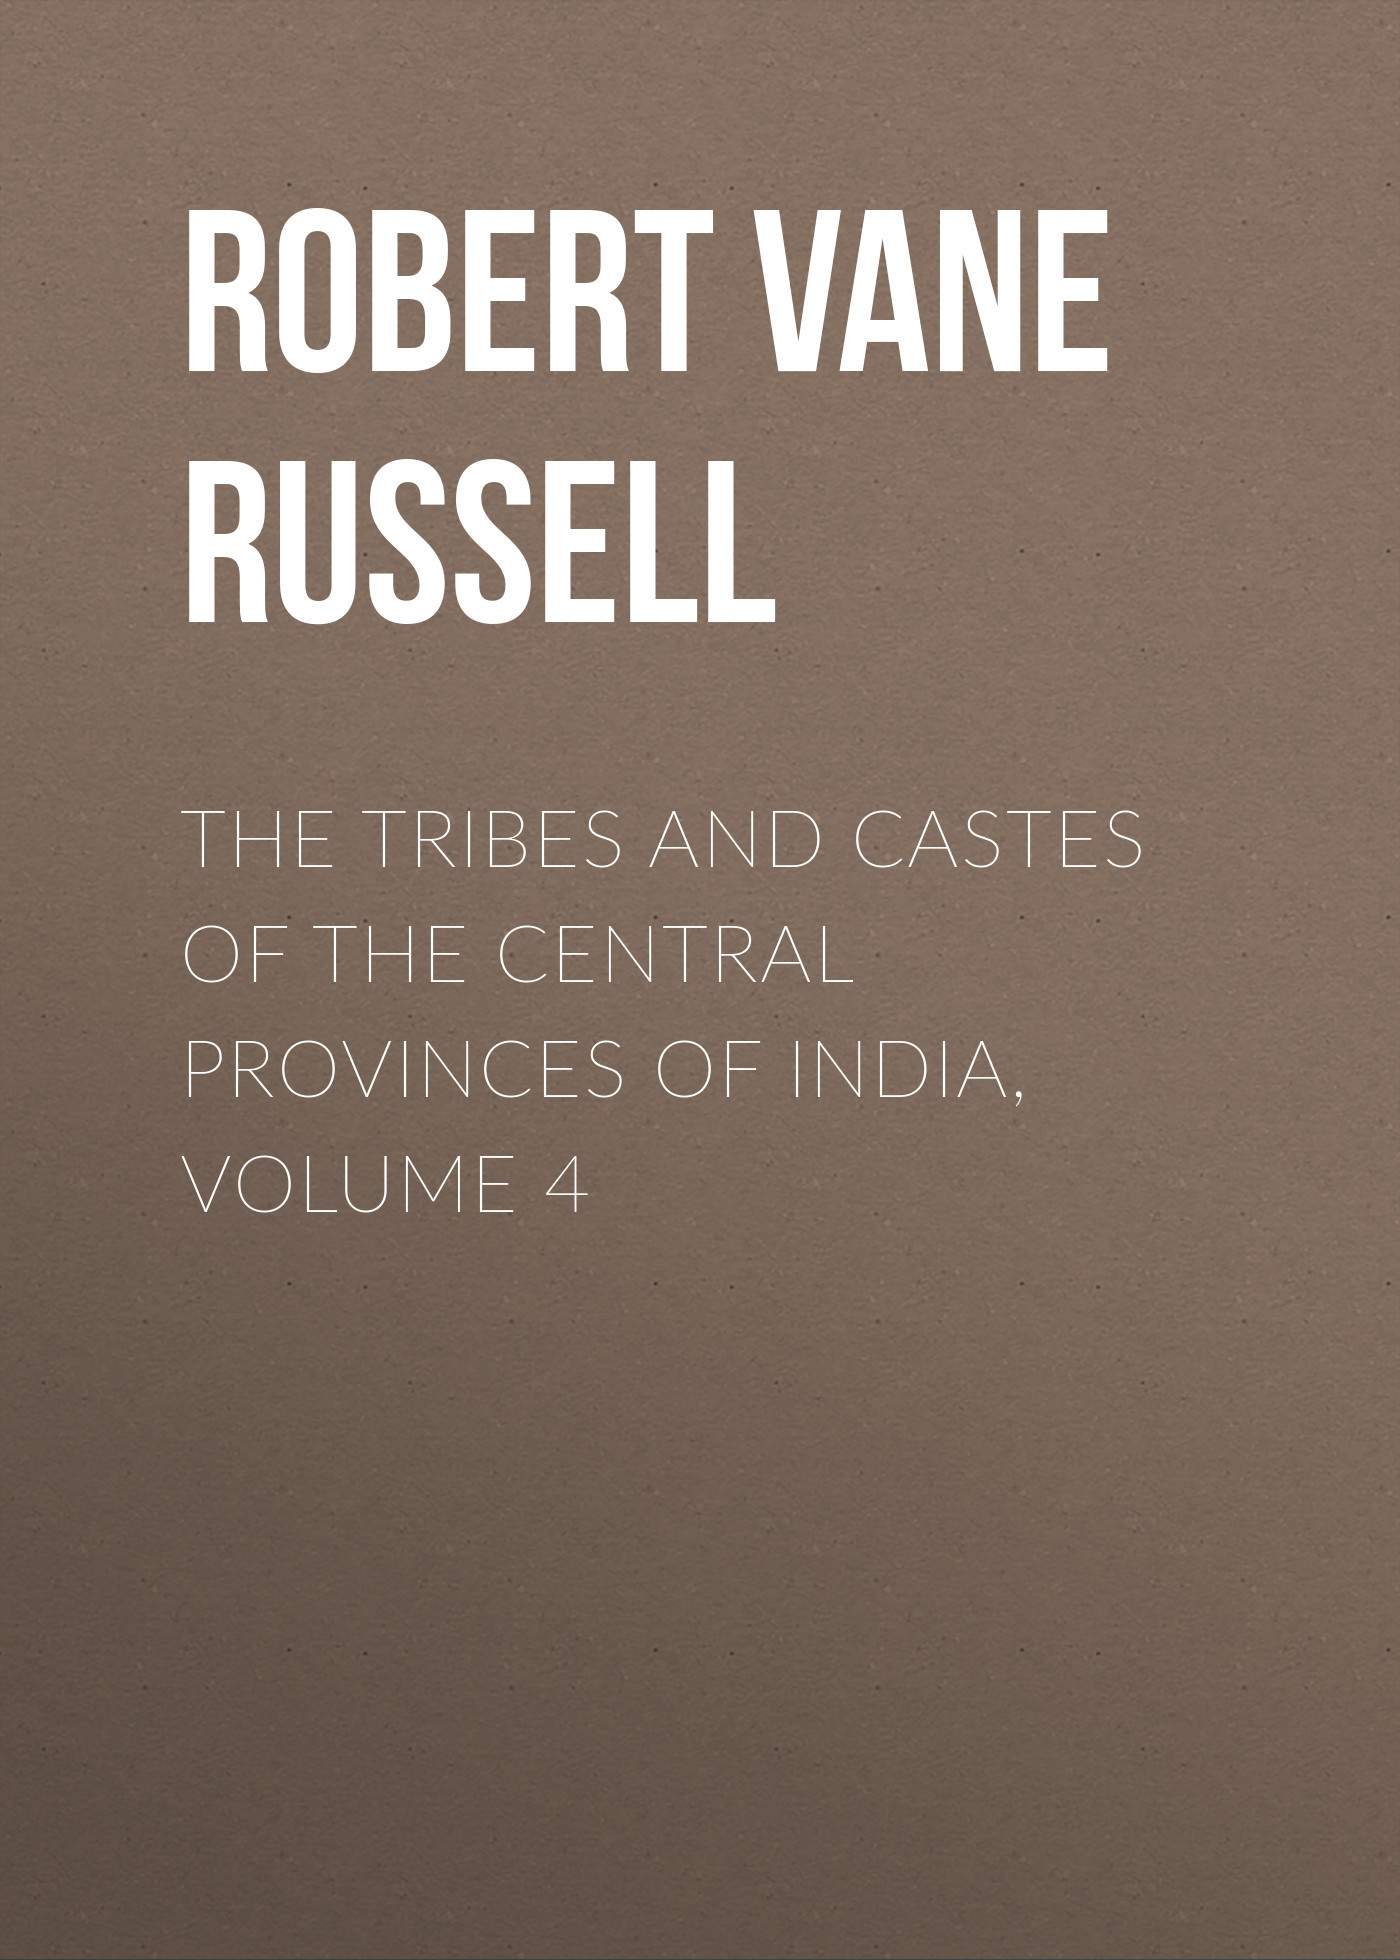 Robert Vane Russell The Tribes and Castes of the Central Provinces of India, Volume 4 brunello cucinelli пуховик